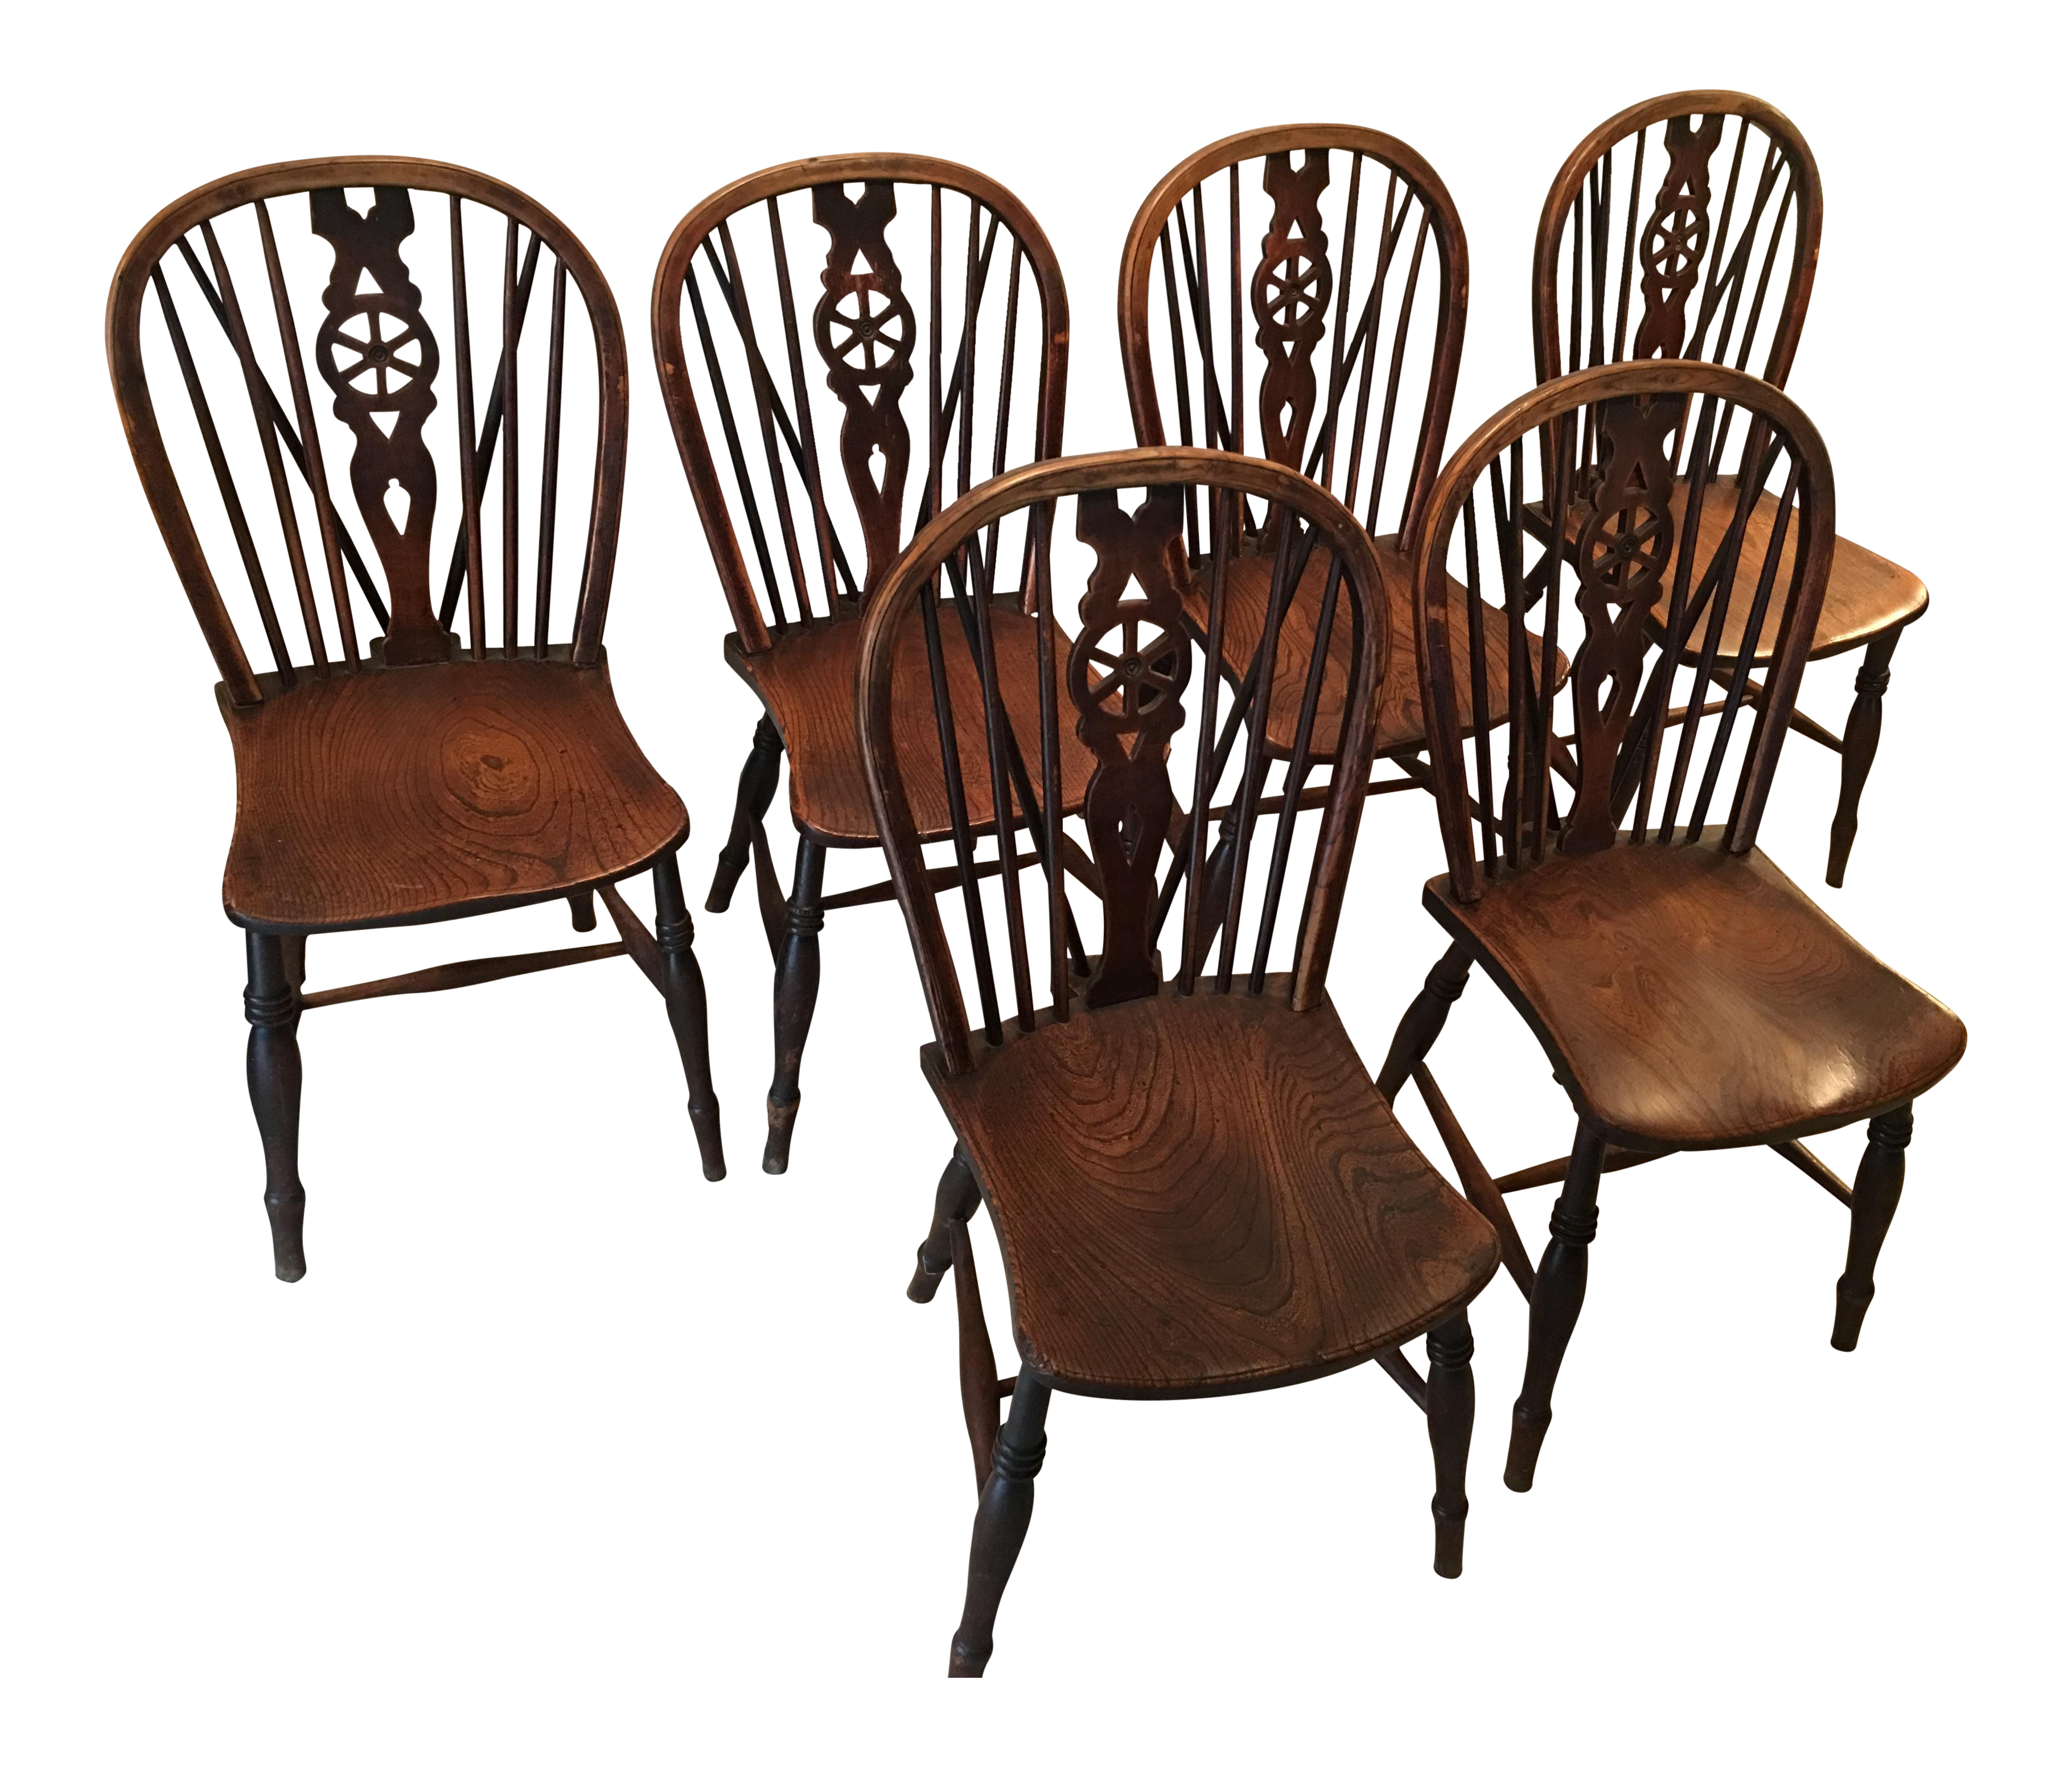 windsor oak dining room kitchen chairs wagon wheel brace backs set 6 kitchen chairs with wheels Image of Windsor Oak Dining Room Kitchen Chairs Wagon Wheel Brace Backs Set 6